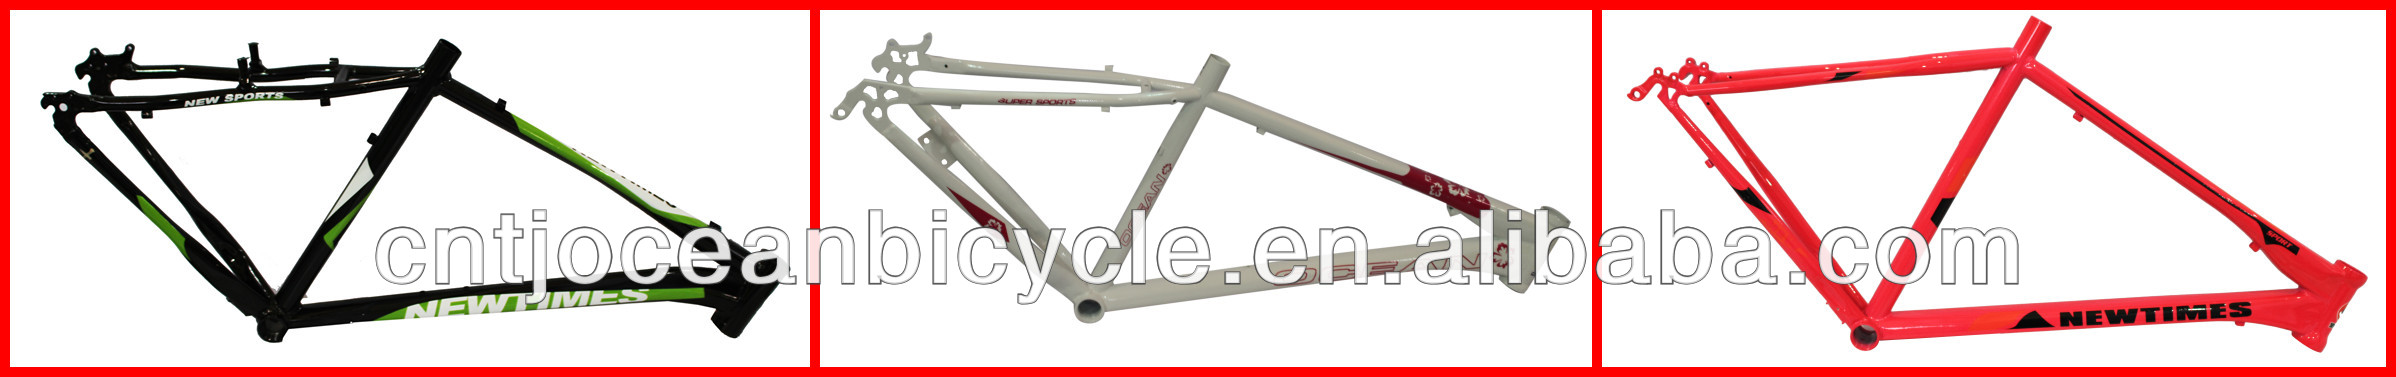 China Factory Bicycle Frame/MTB Frame/Steel Bicycle Frame/Raw Bicycle Frame